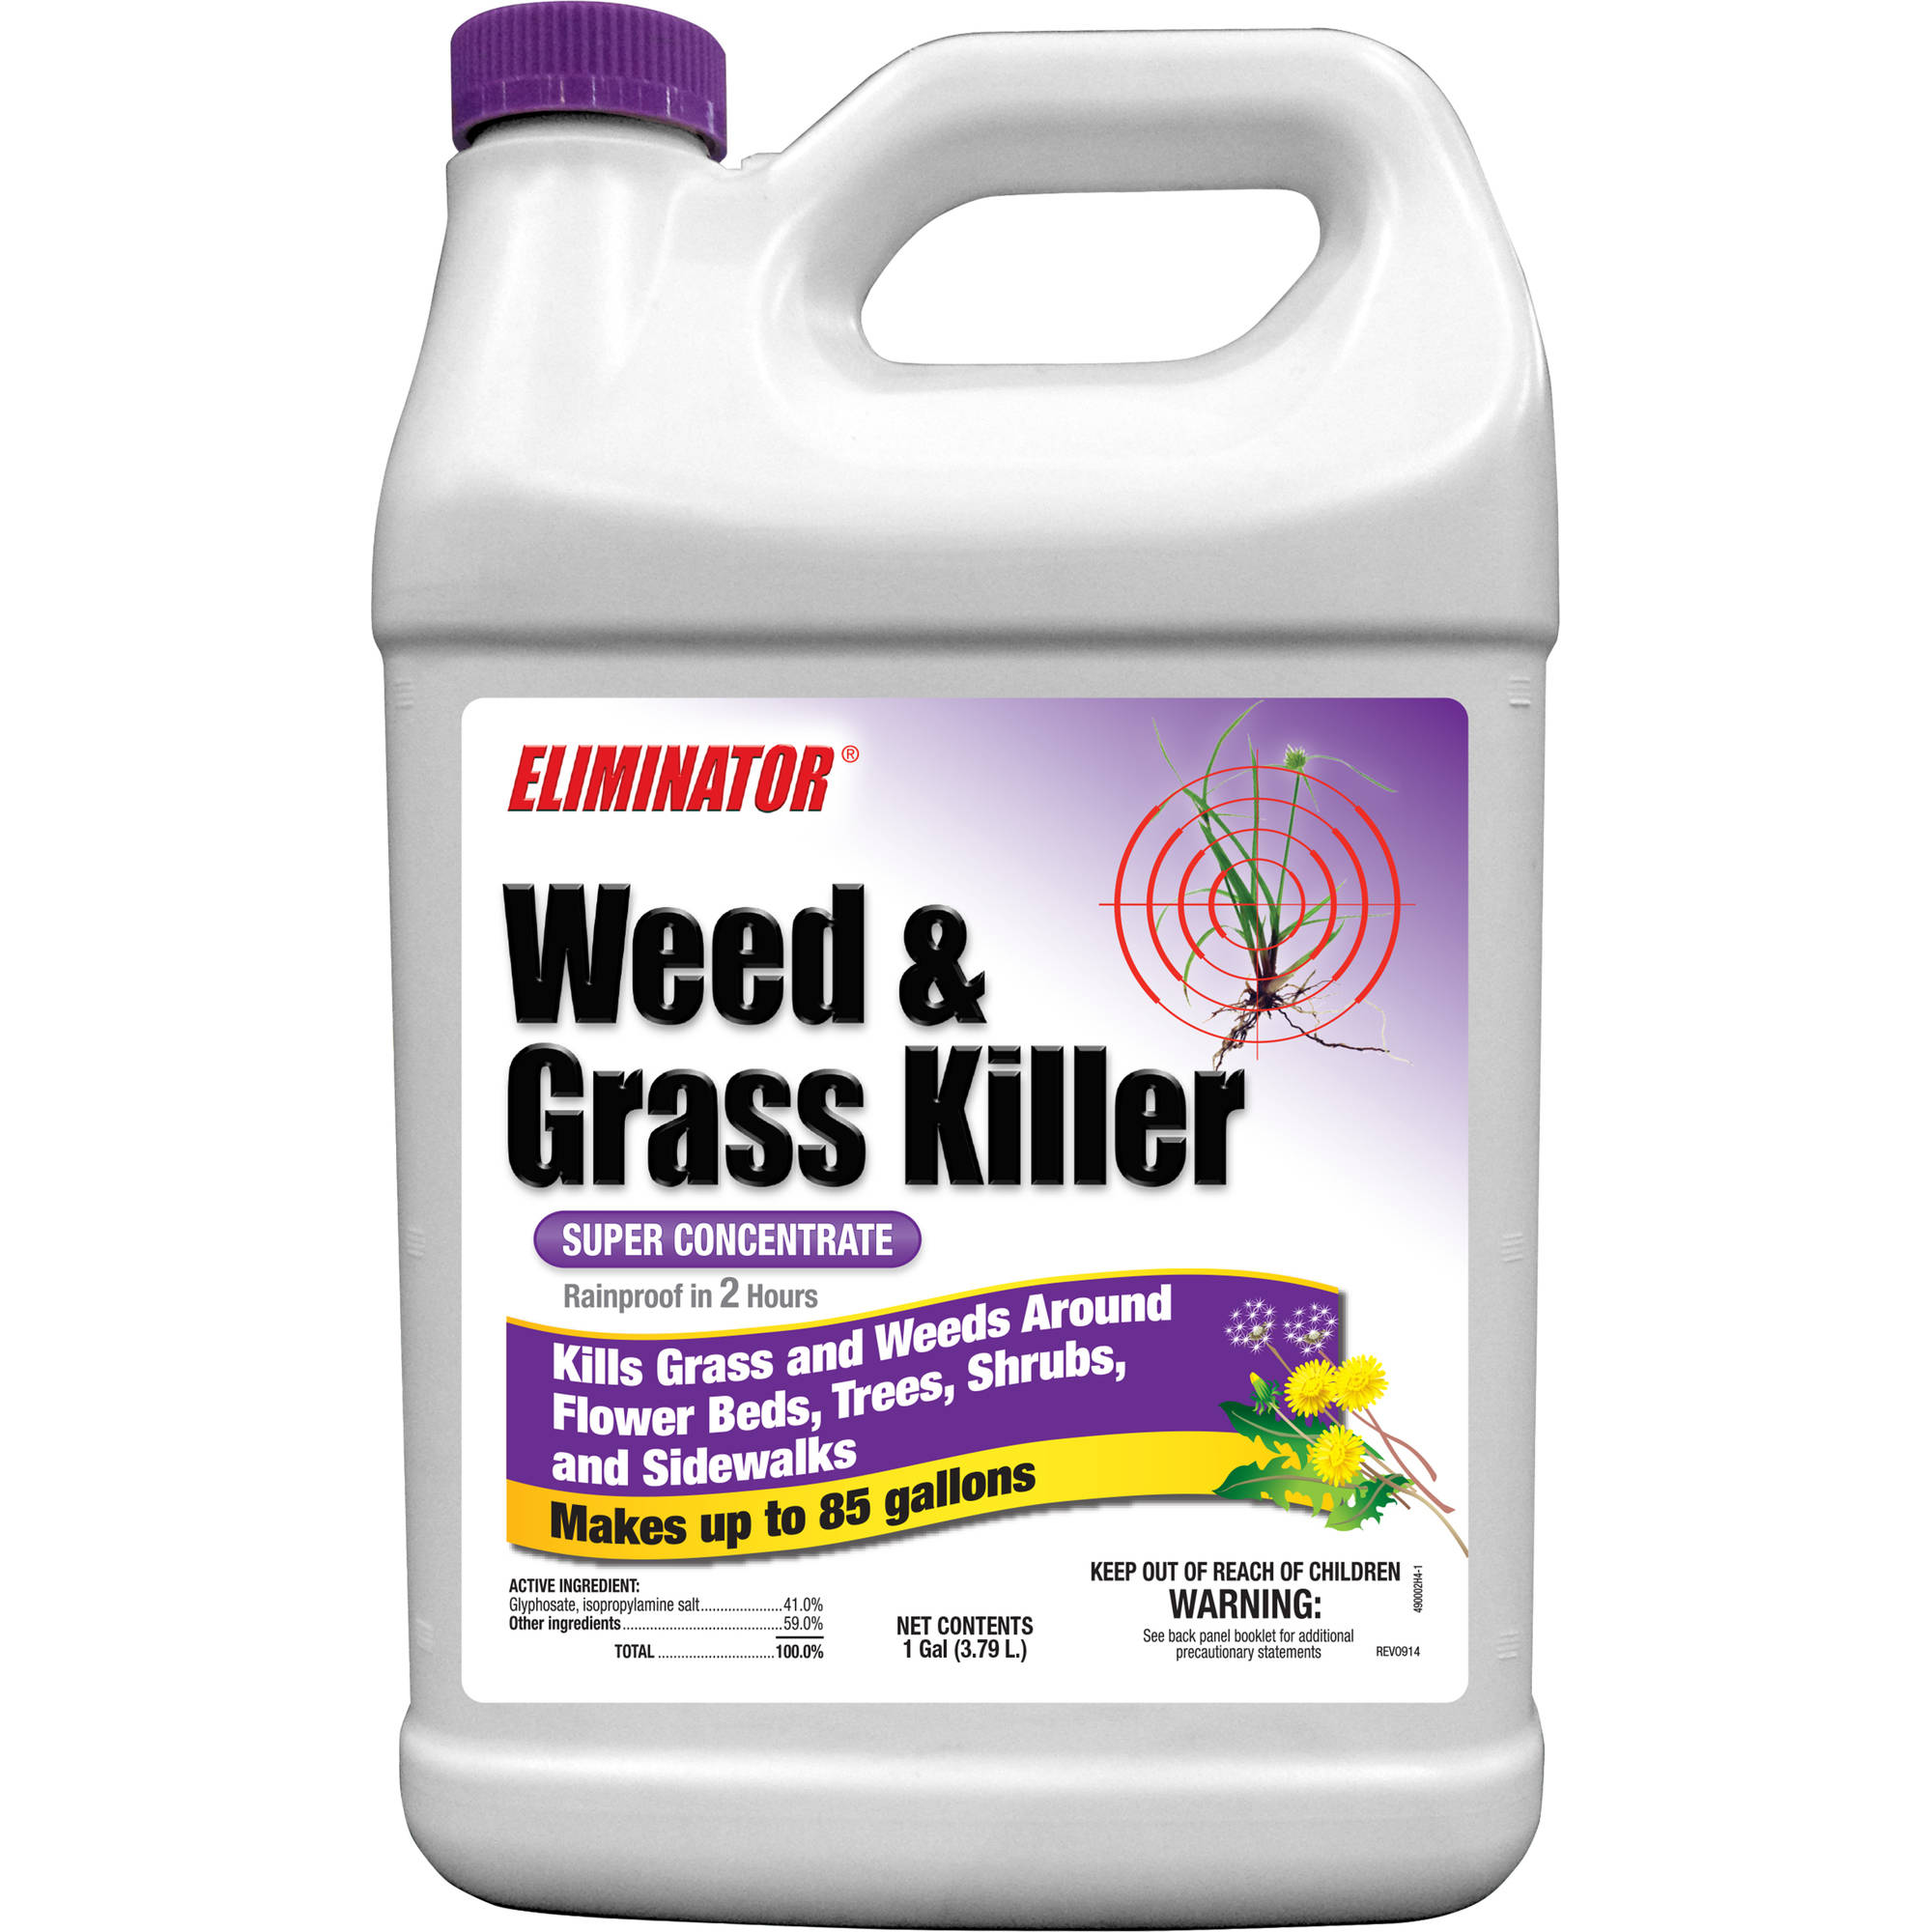 Eliminator Super Concentrate Liquid Weed and Grass Killer, 1 gal